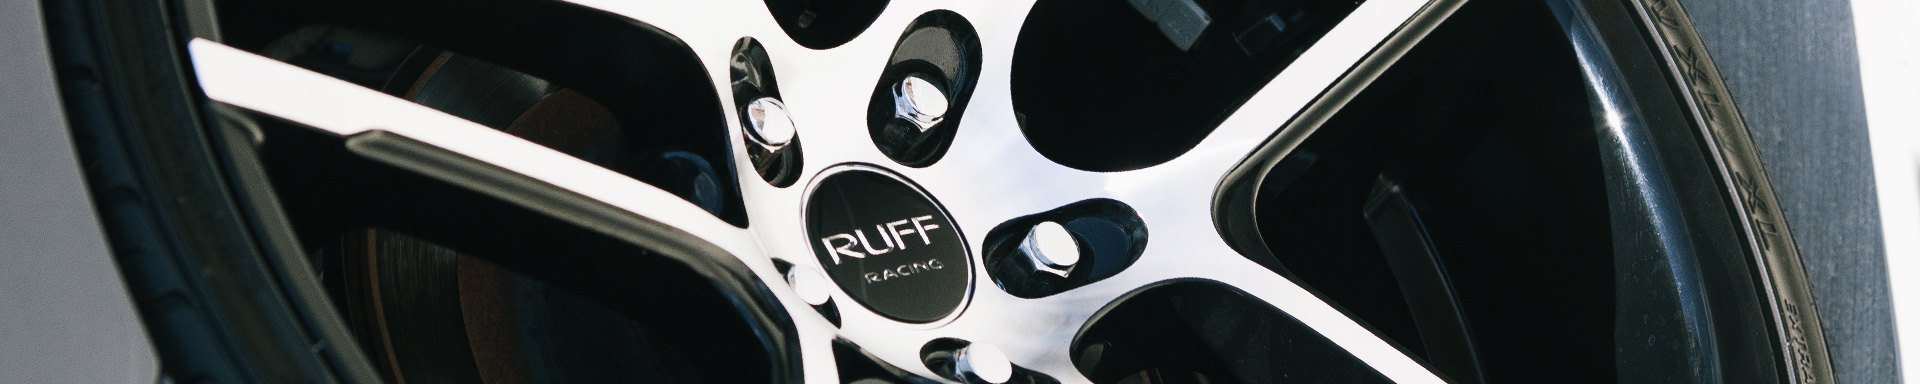 Universal RUFF RACING CUSTOM WHEELS